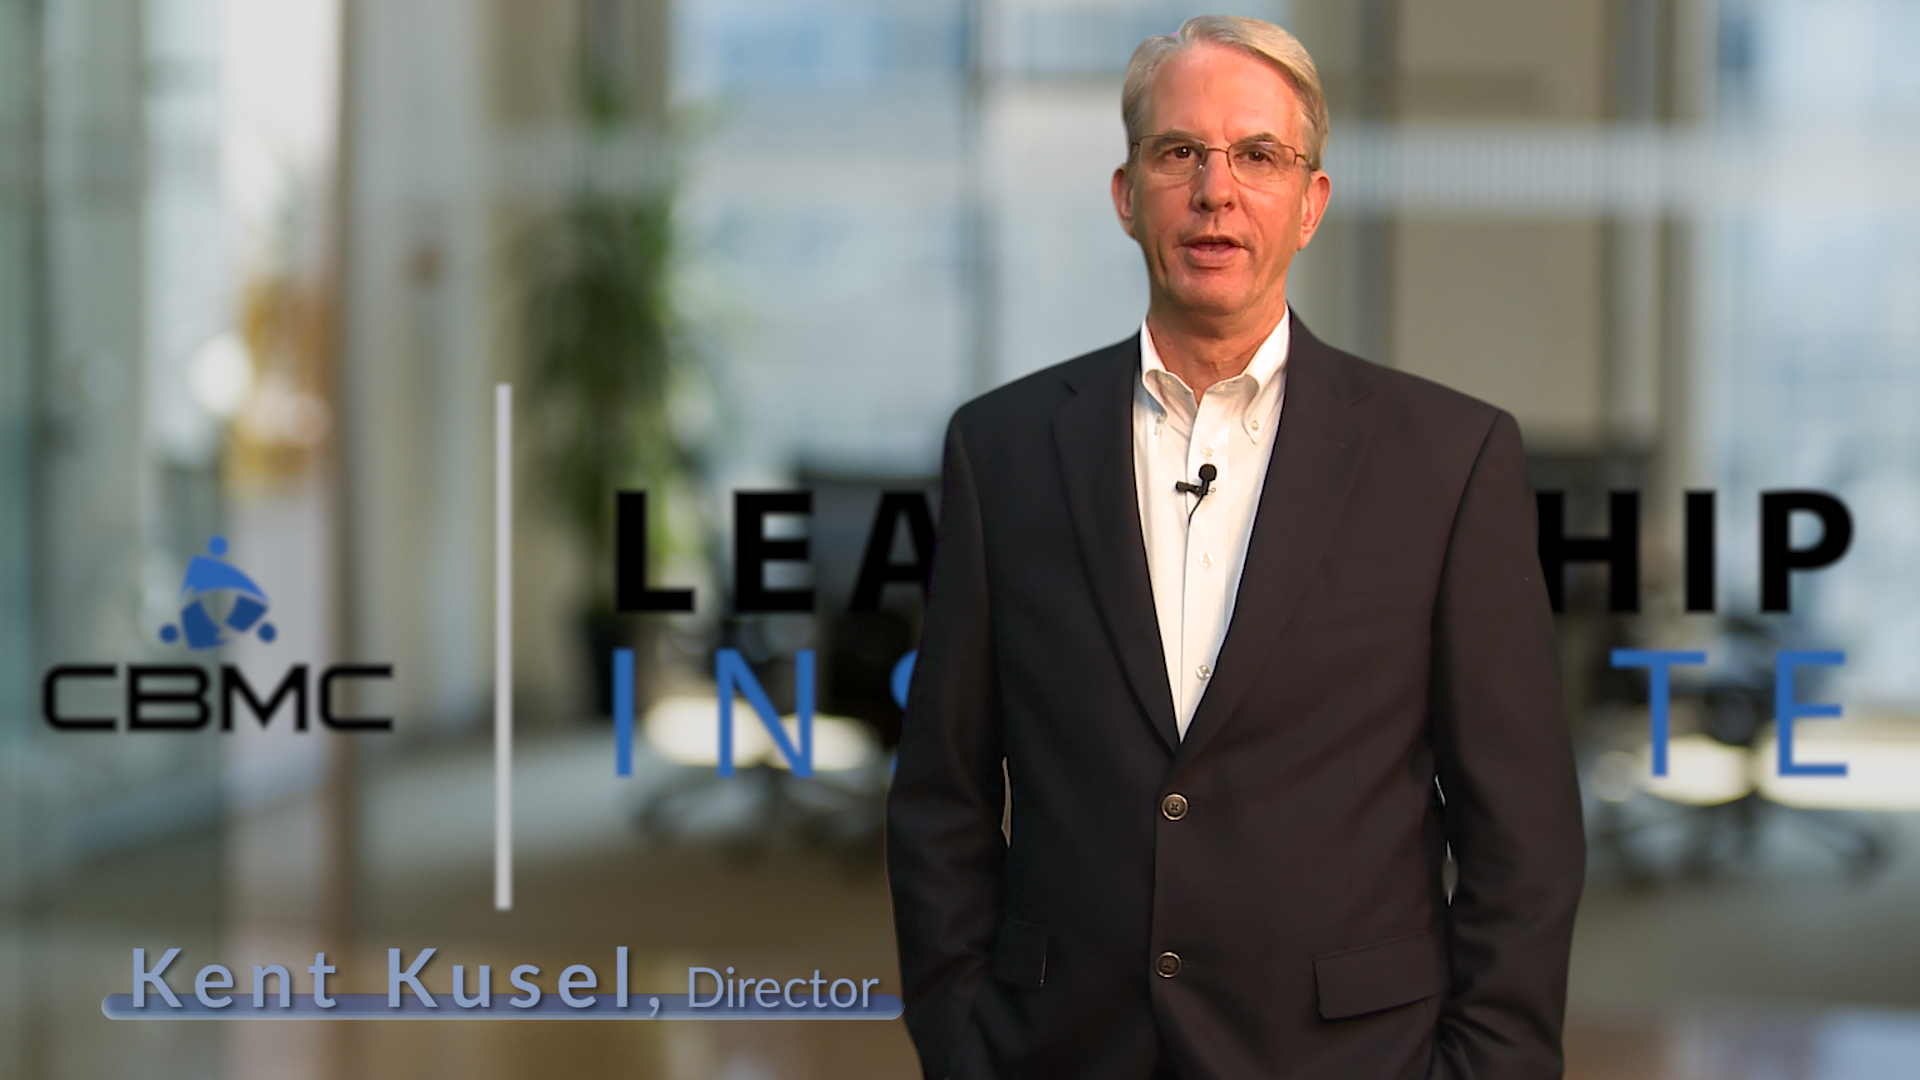 What Is The Leadership Institute?